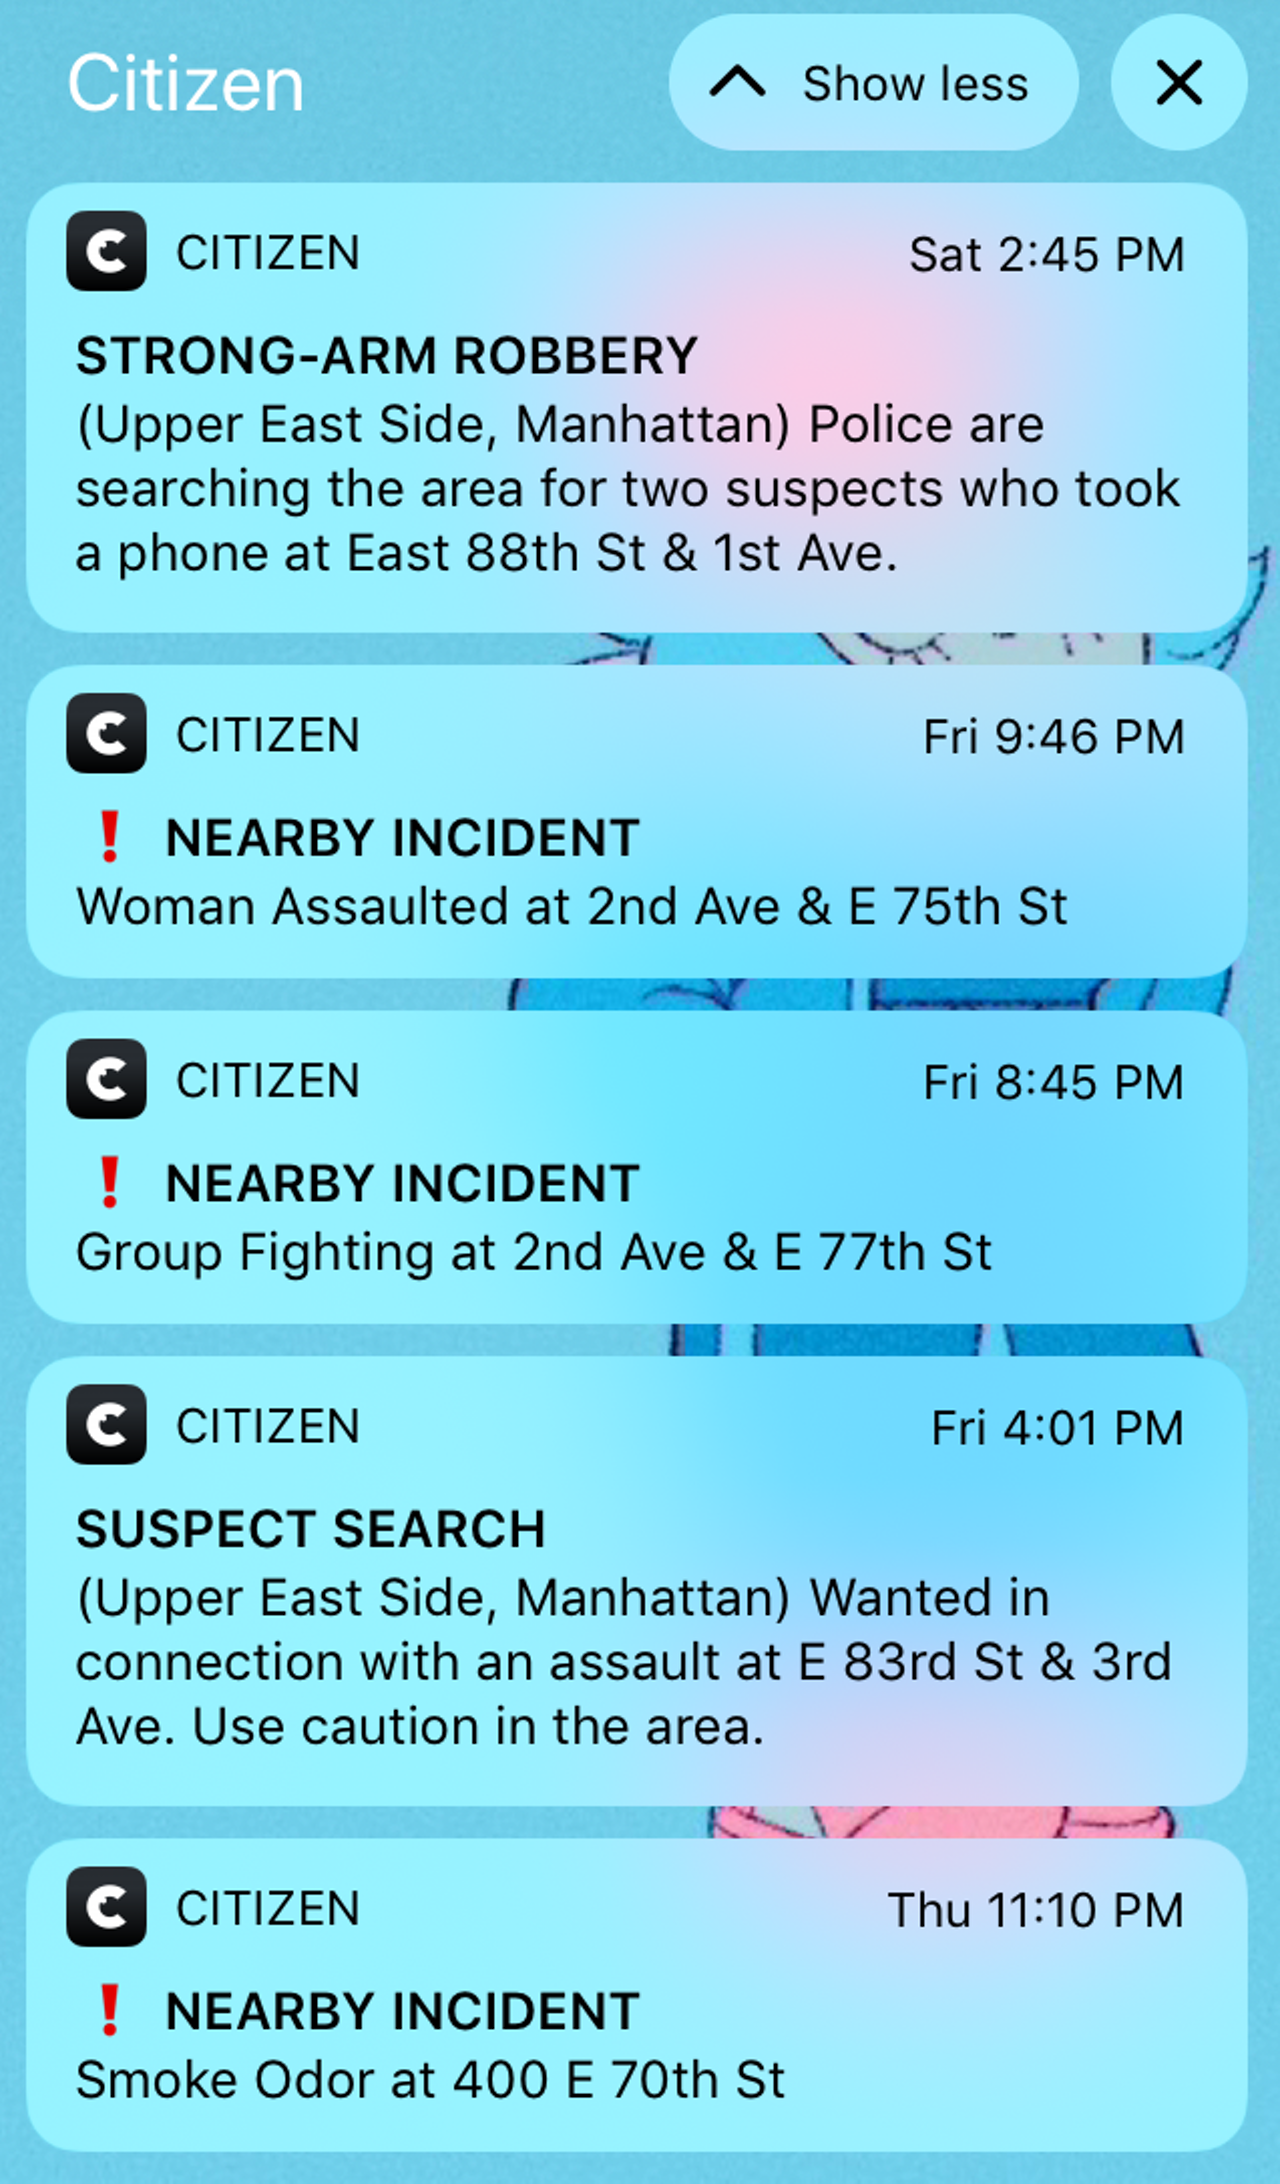 Neighborhood security apps are making us wildly paranoid